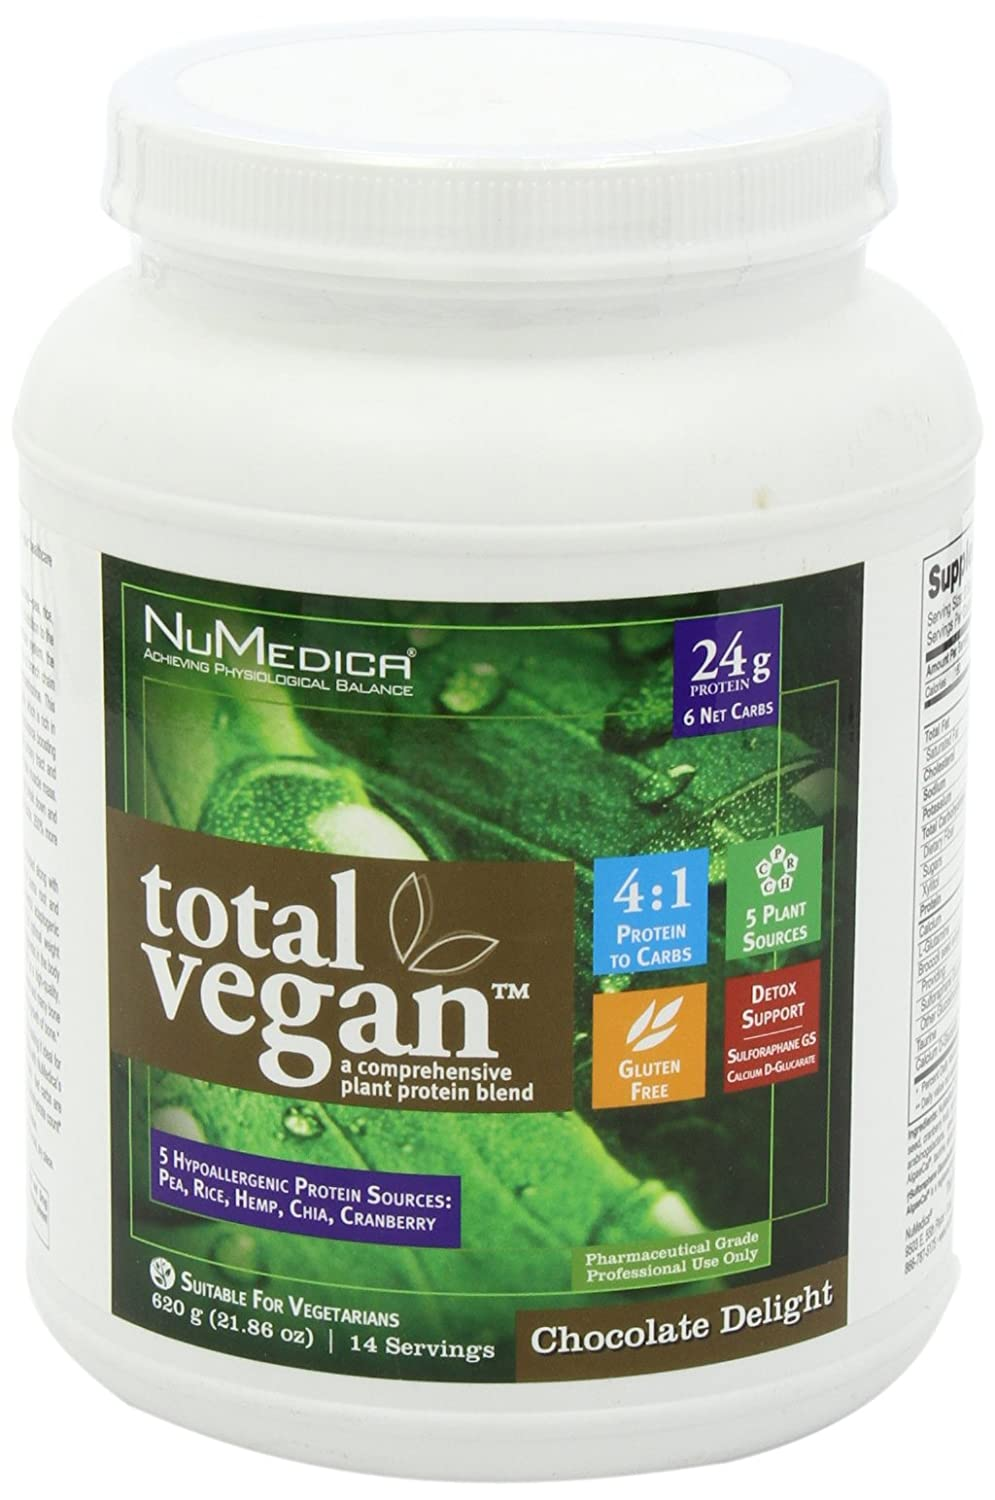 Amazon.com: NuMedica - Total Vegan Chocolate Delight 21.86 Ounce ...